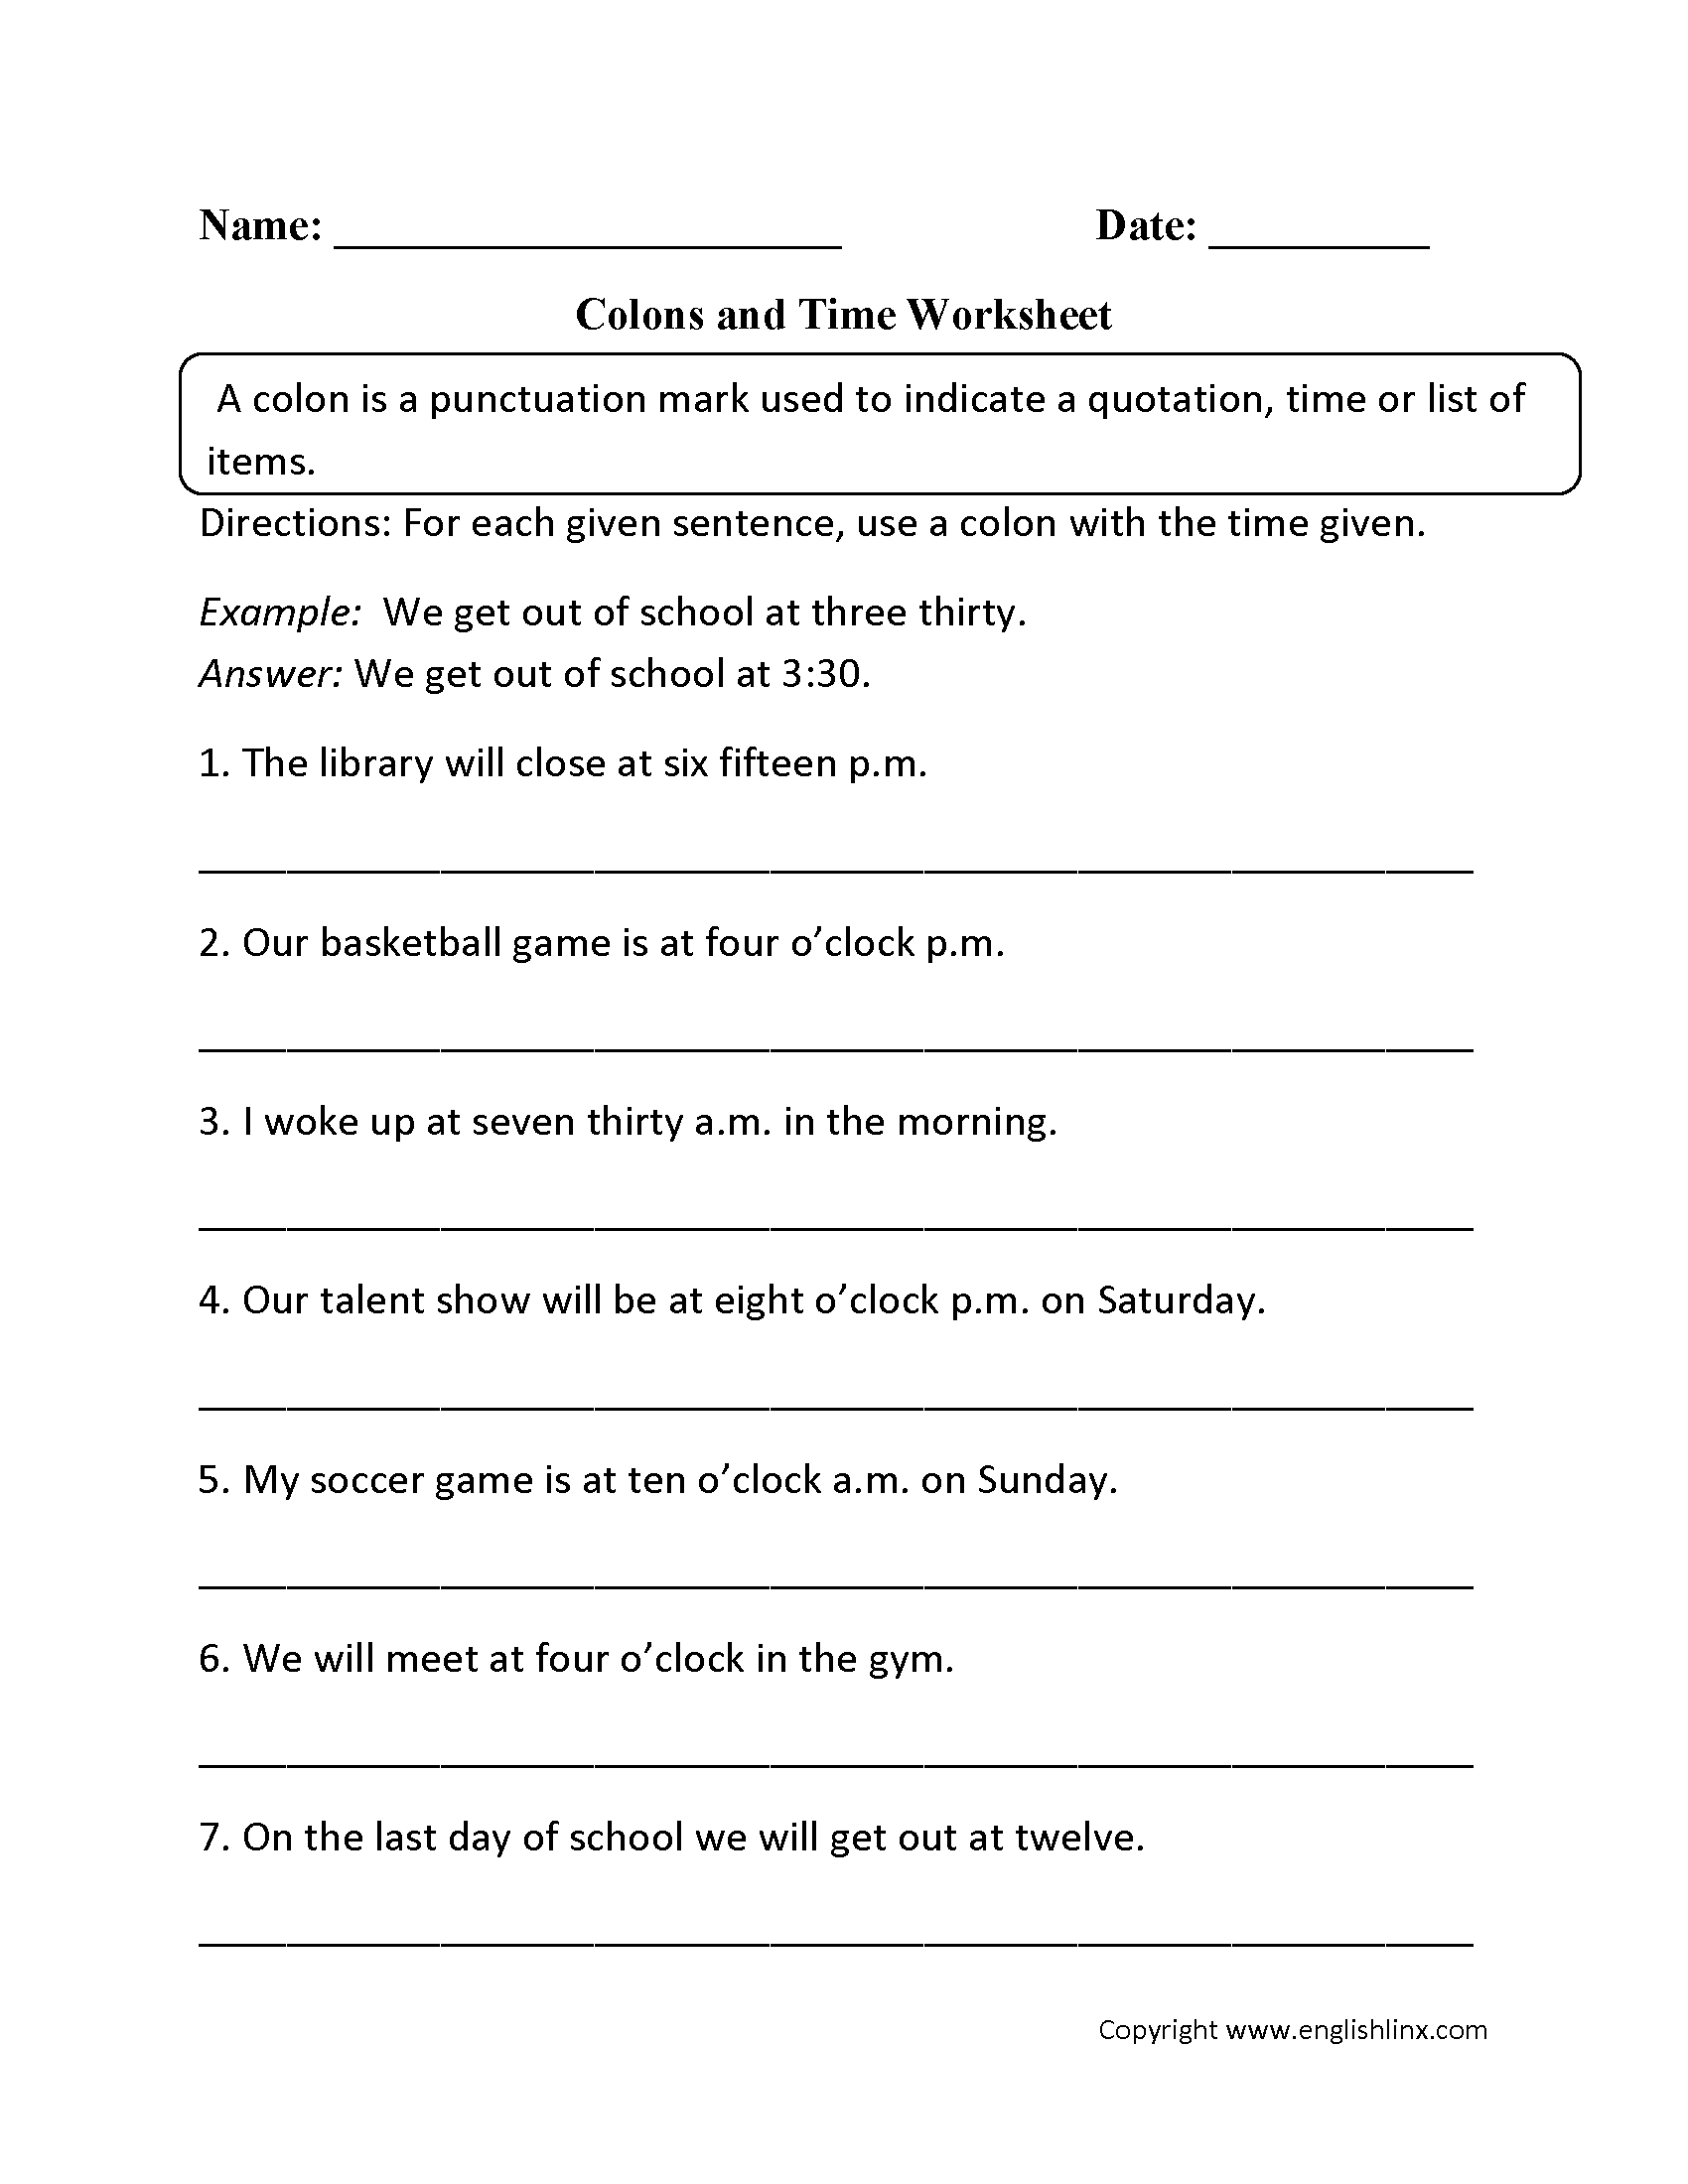 Colon Worksheets With Images